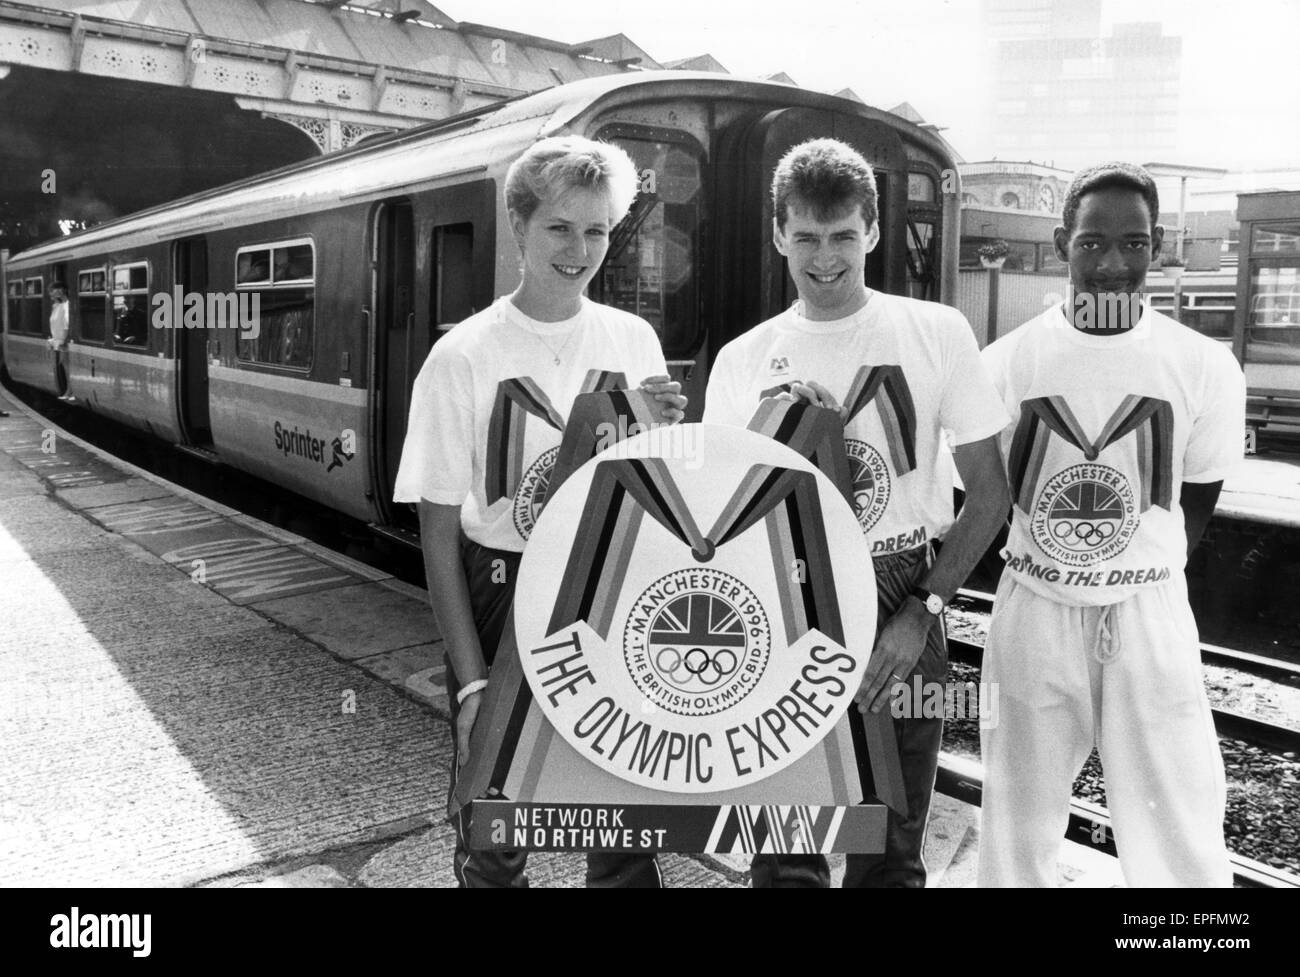 Manchester Olympic Bid for the 1996 Games, 16th July 1990.  The Olympic Bid train to Blackpool. - Stock Image